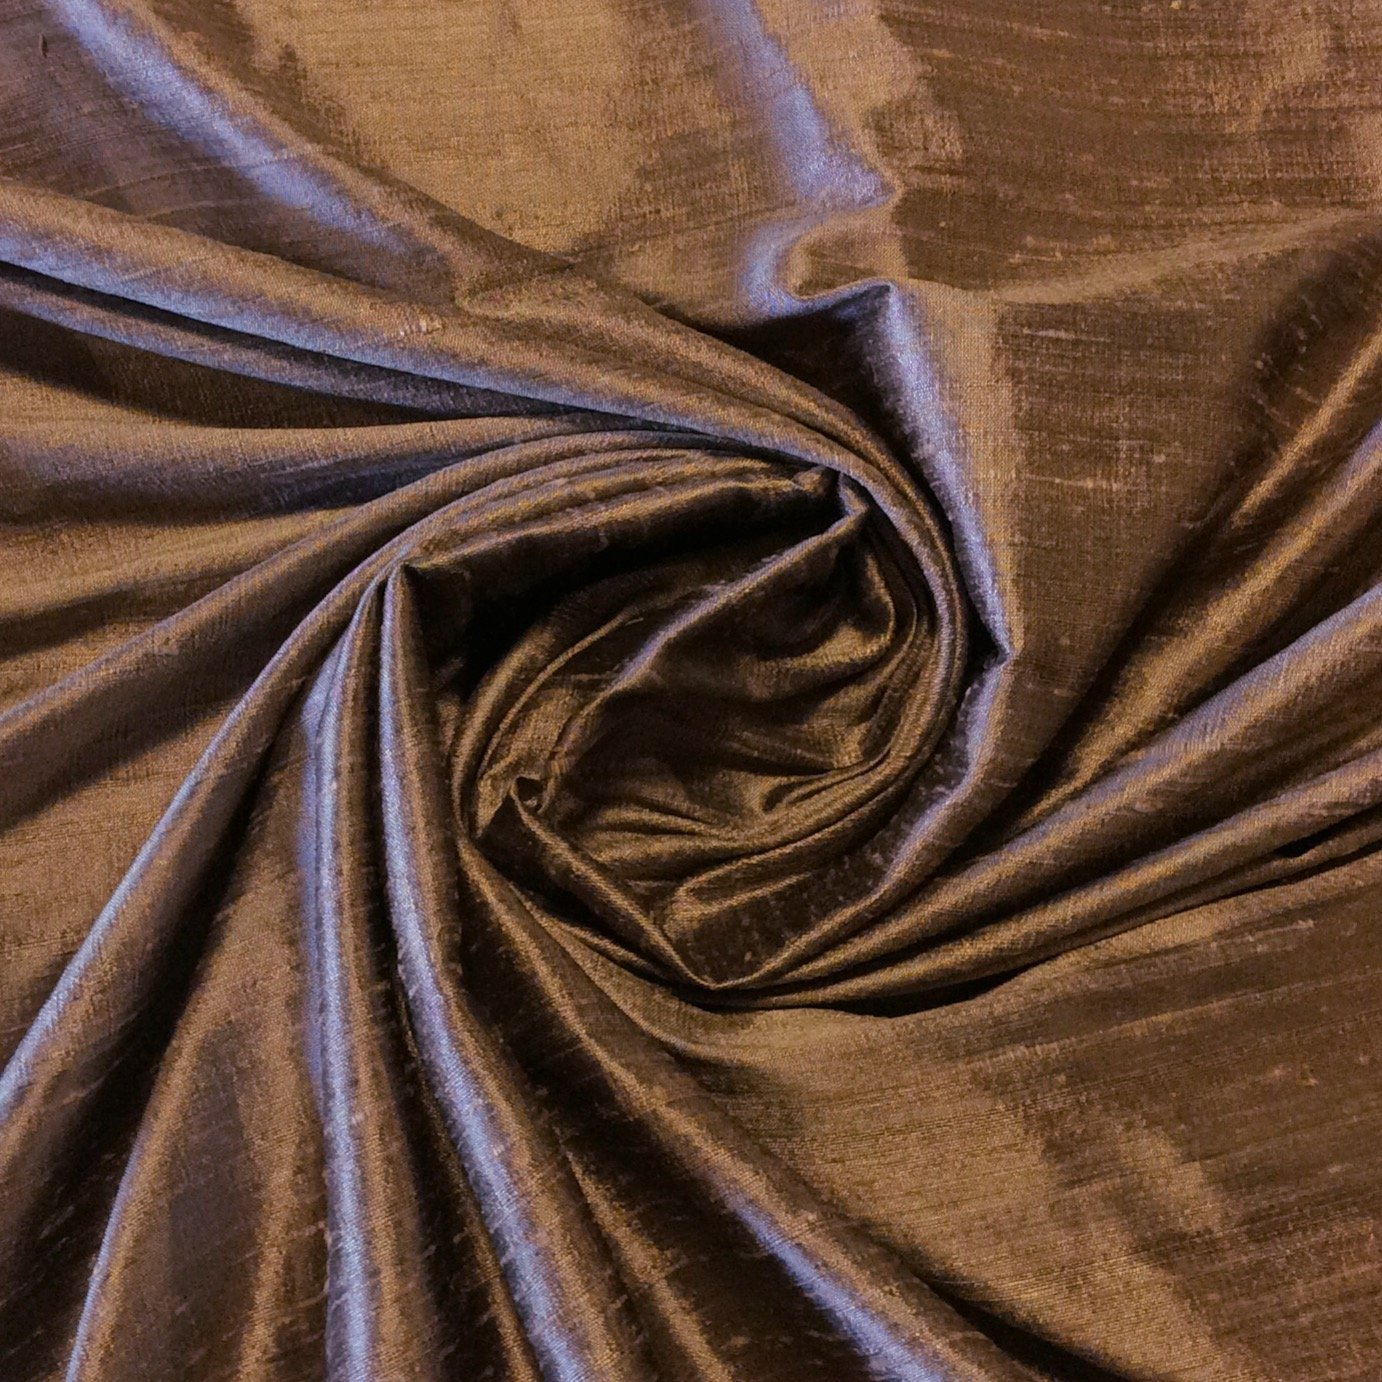 SILK SHW23 Light Brown Exotic Hand Woven Dupioni 100% Silk Fabric Drapery Fabric BY